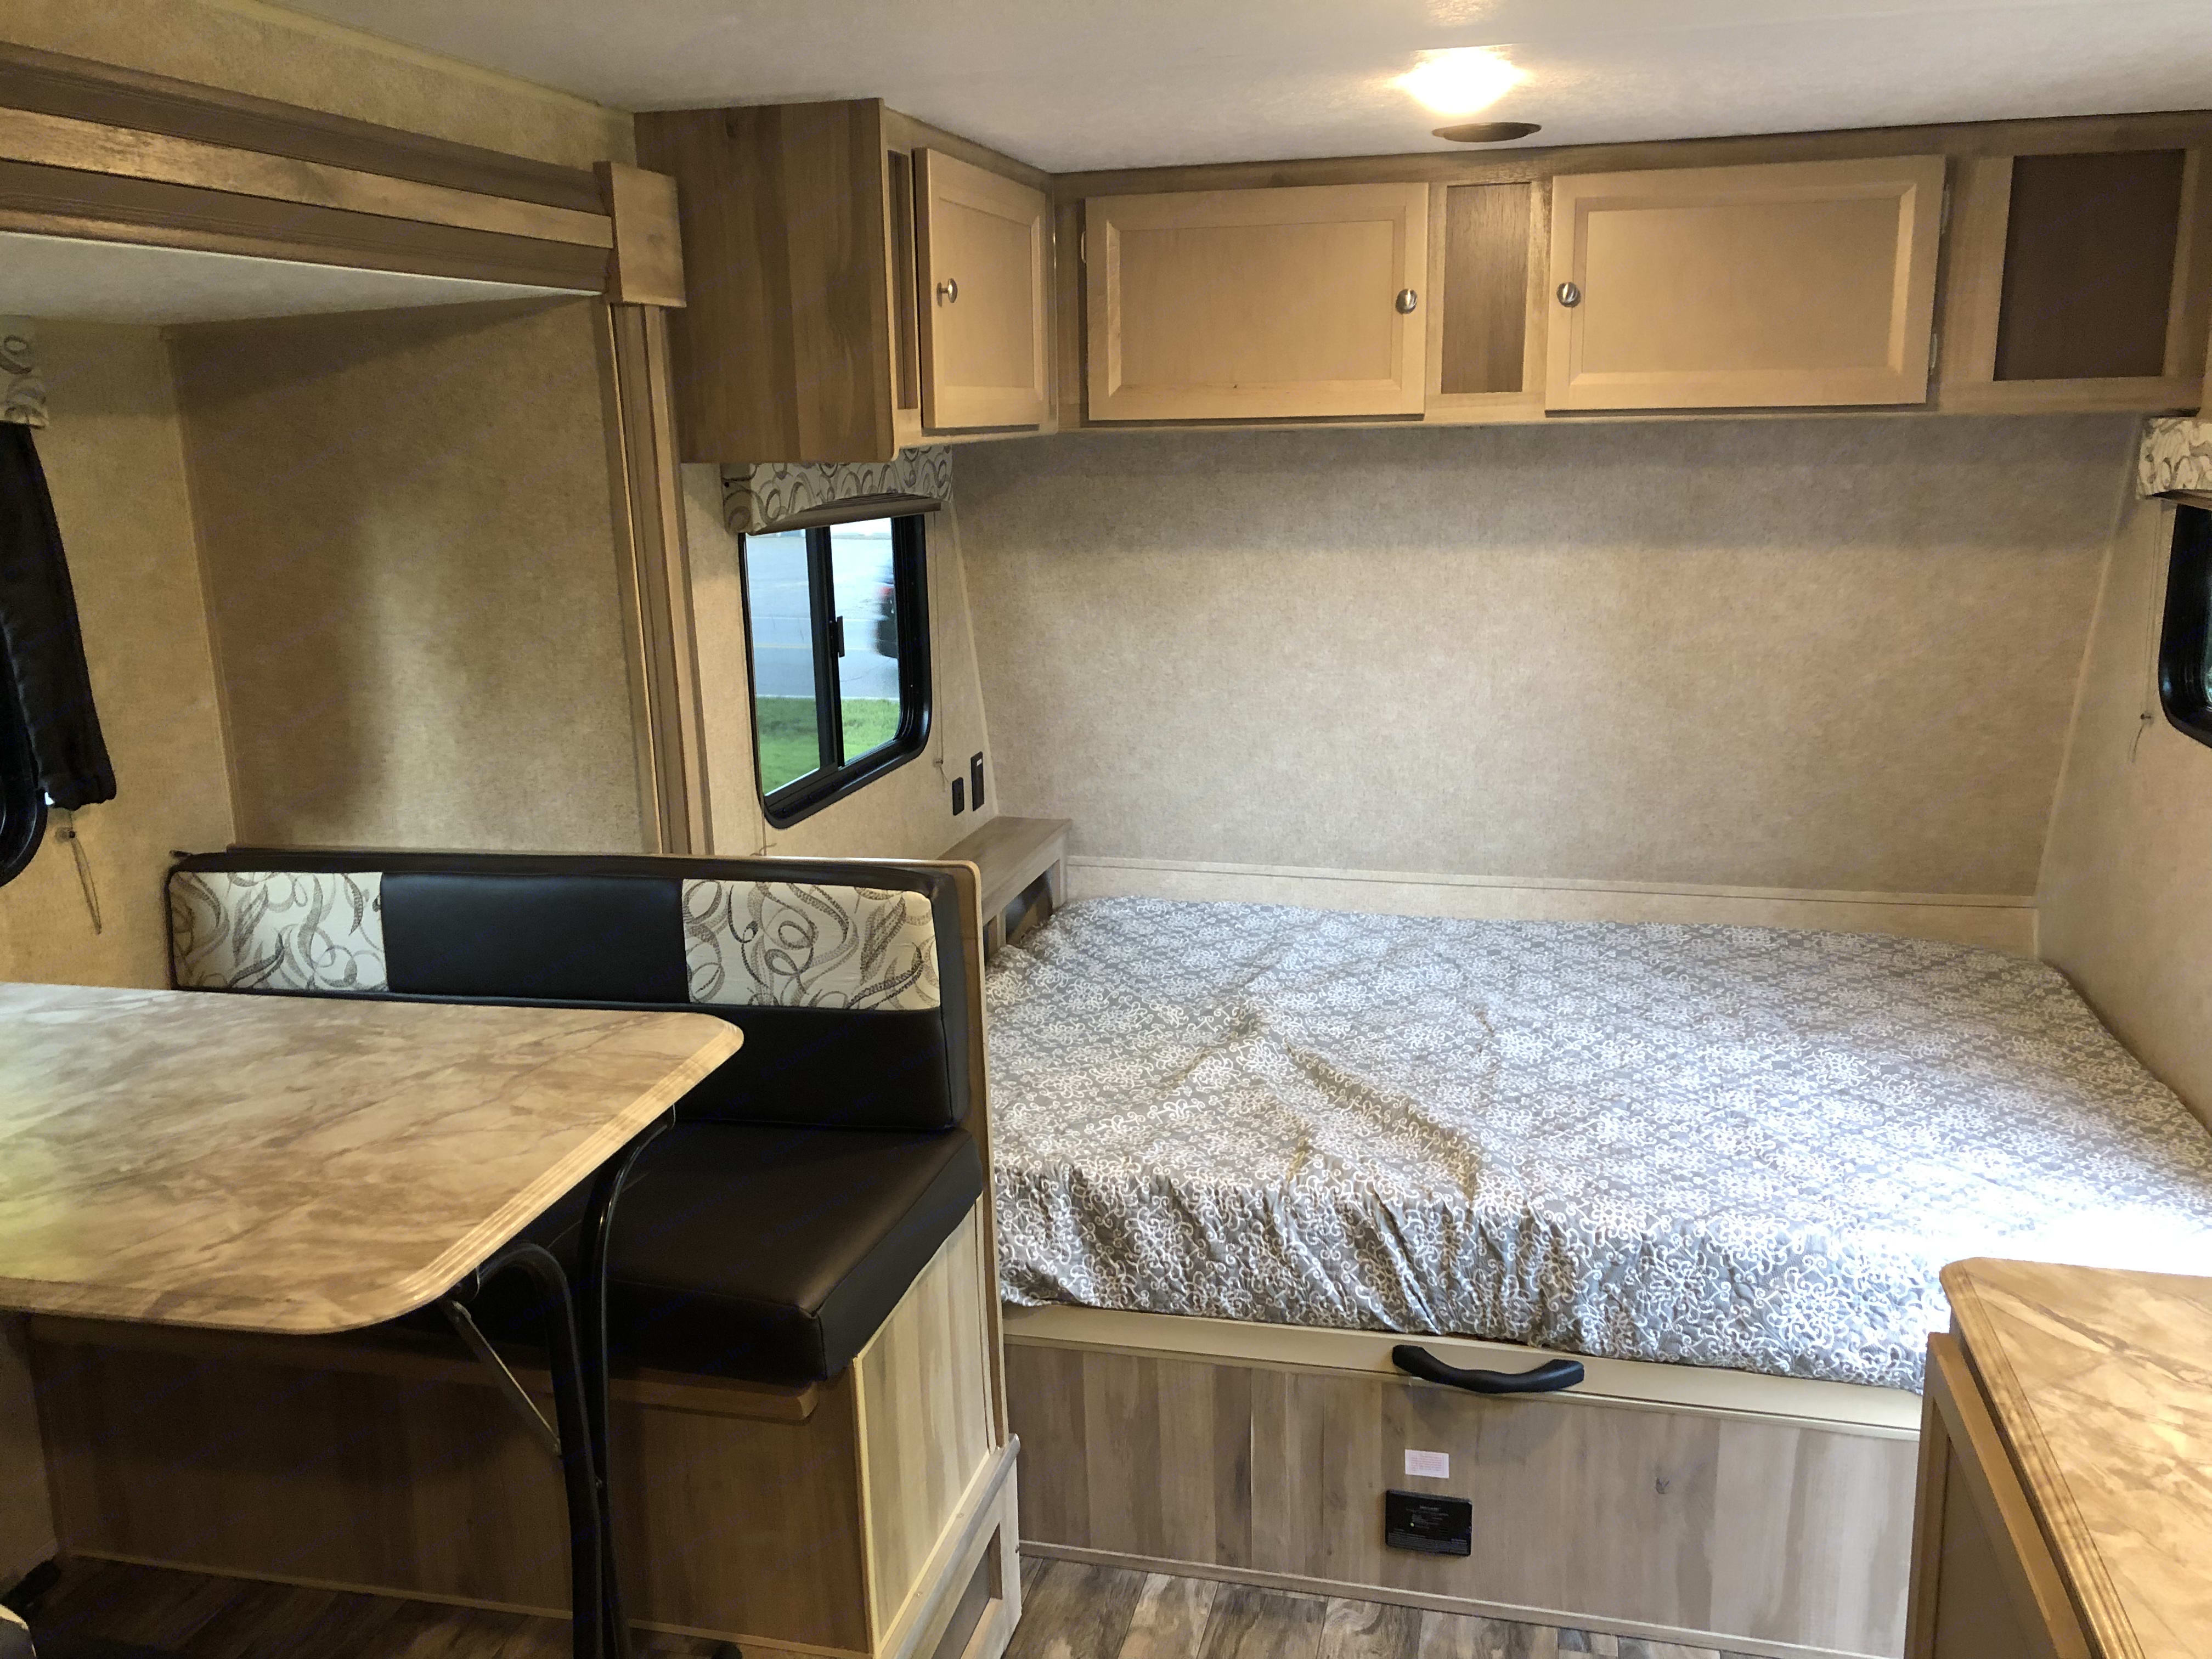 Lots of space w the slide open and full size bed. Coachmen Catalina 2020